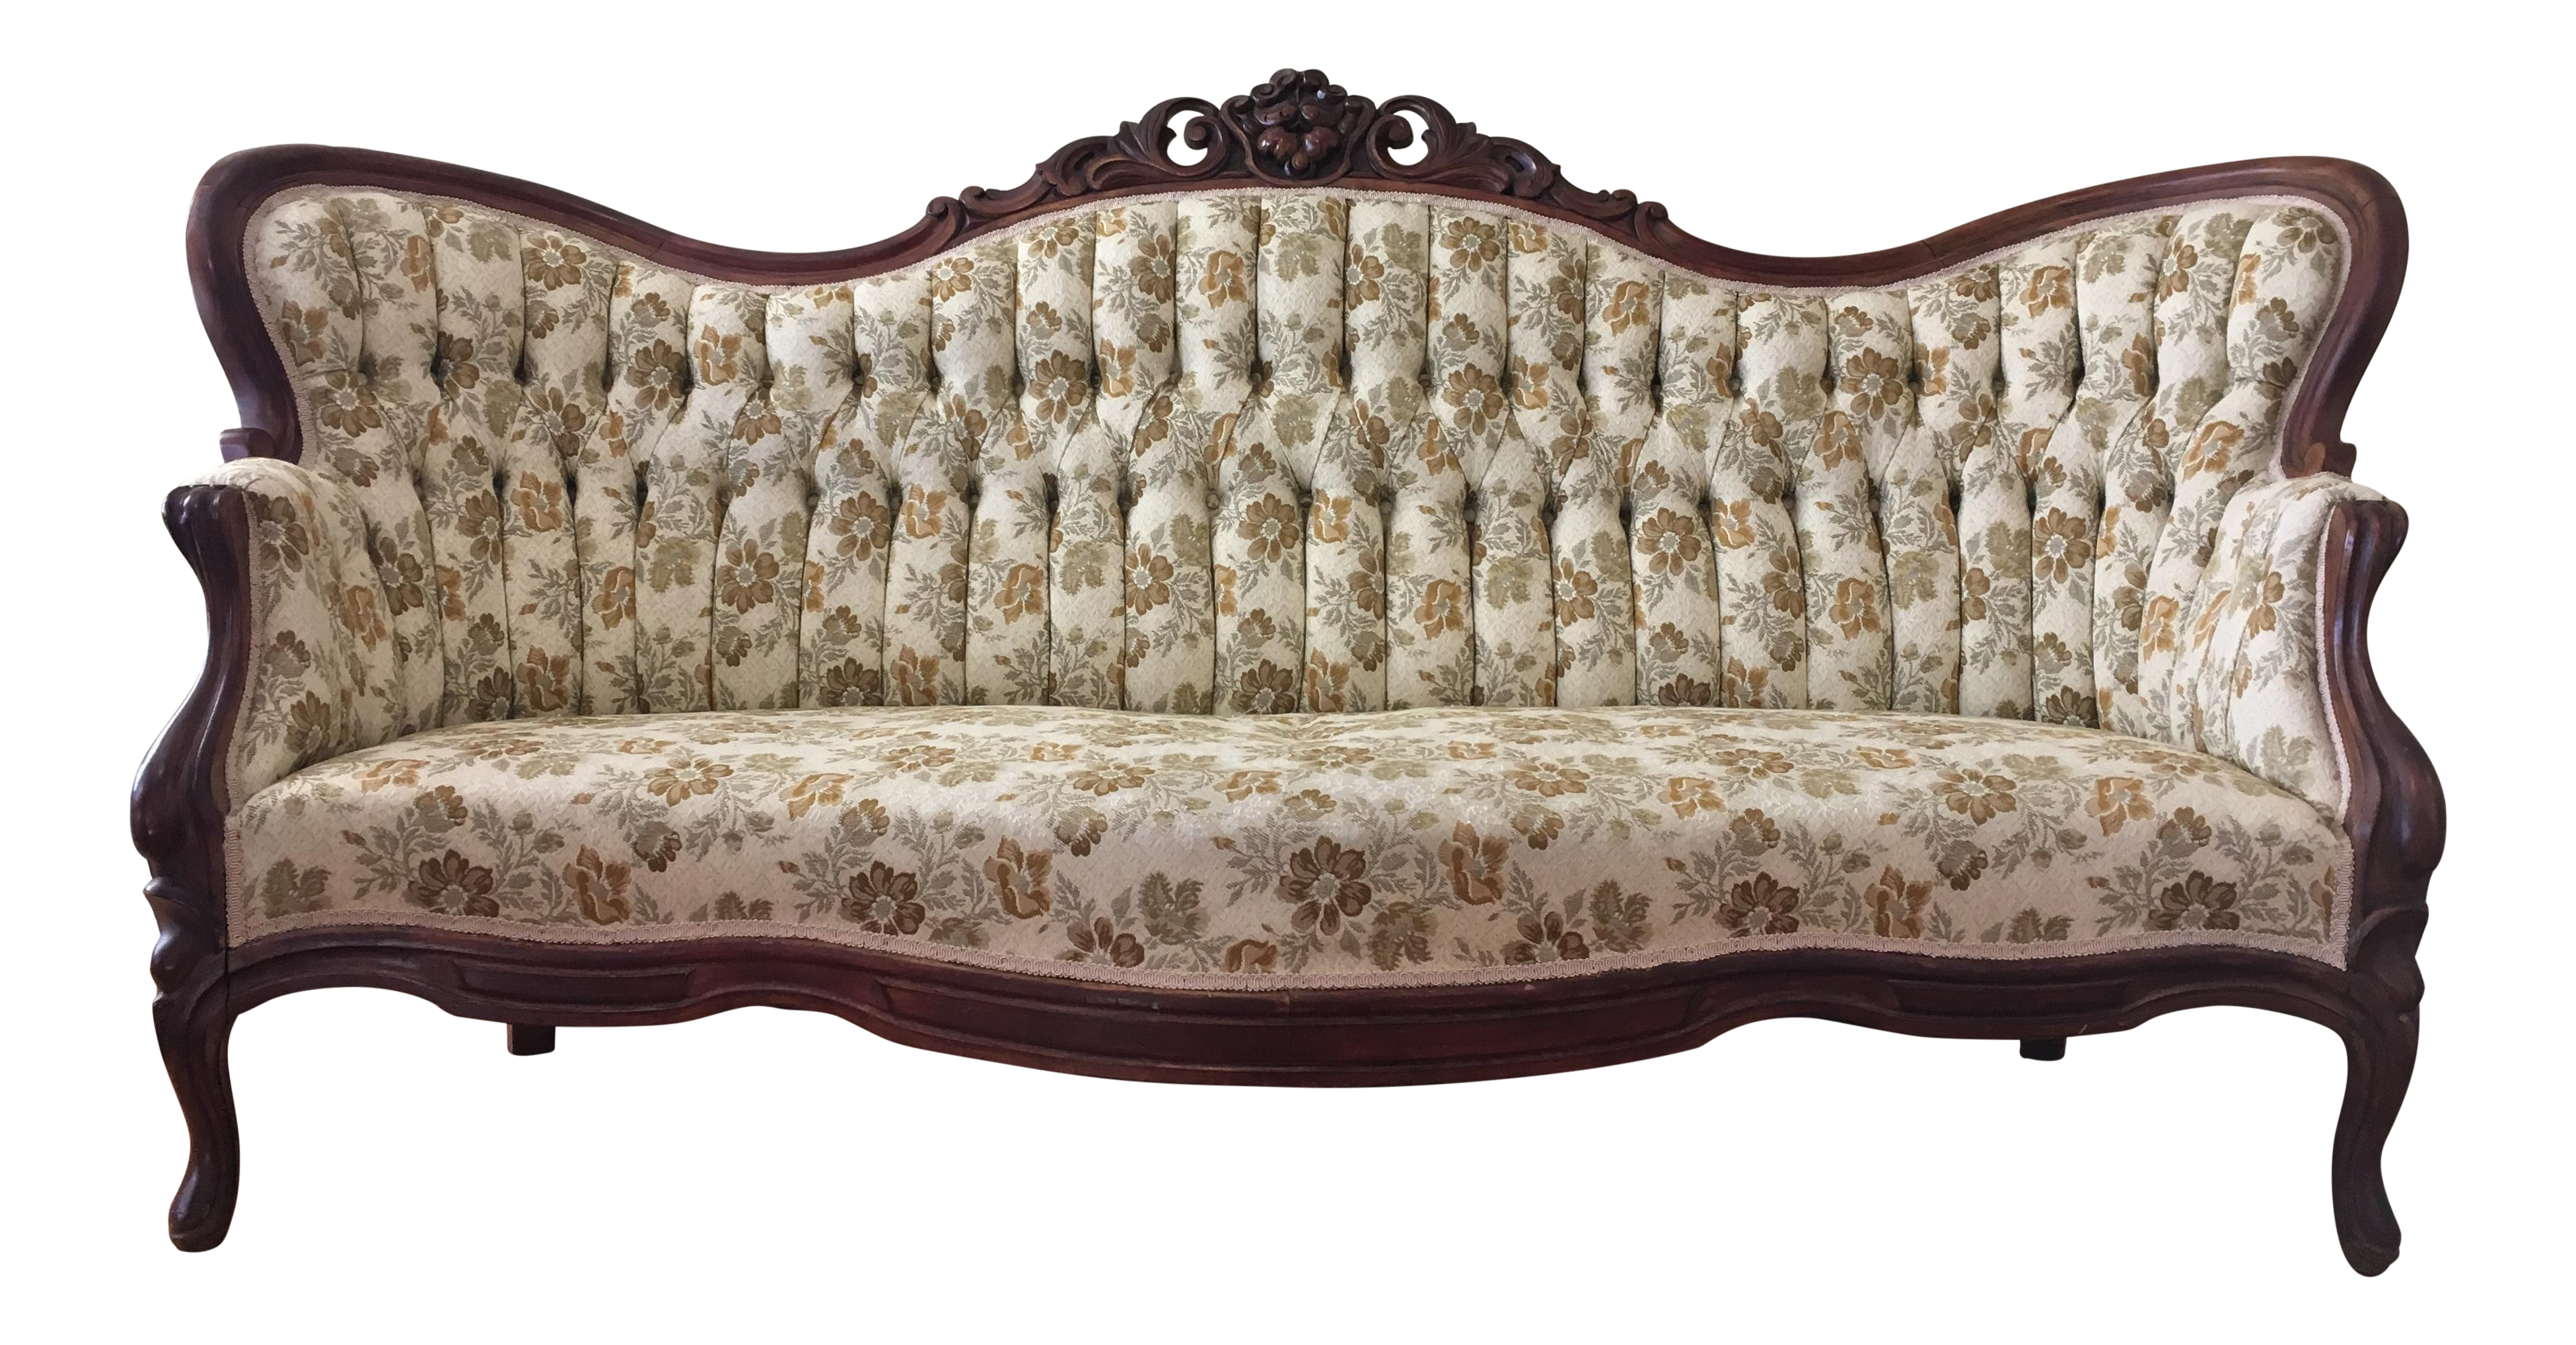 Victorian couch png. Antique camelback sofa chairish